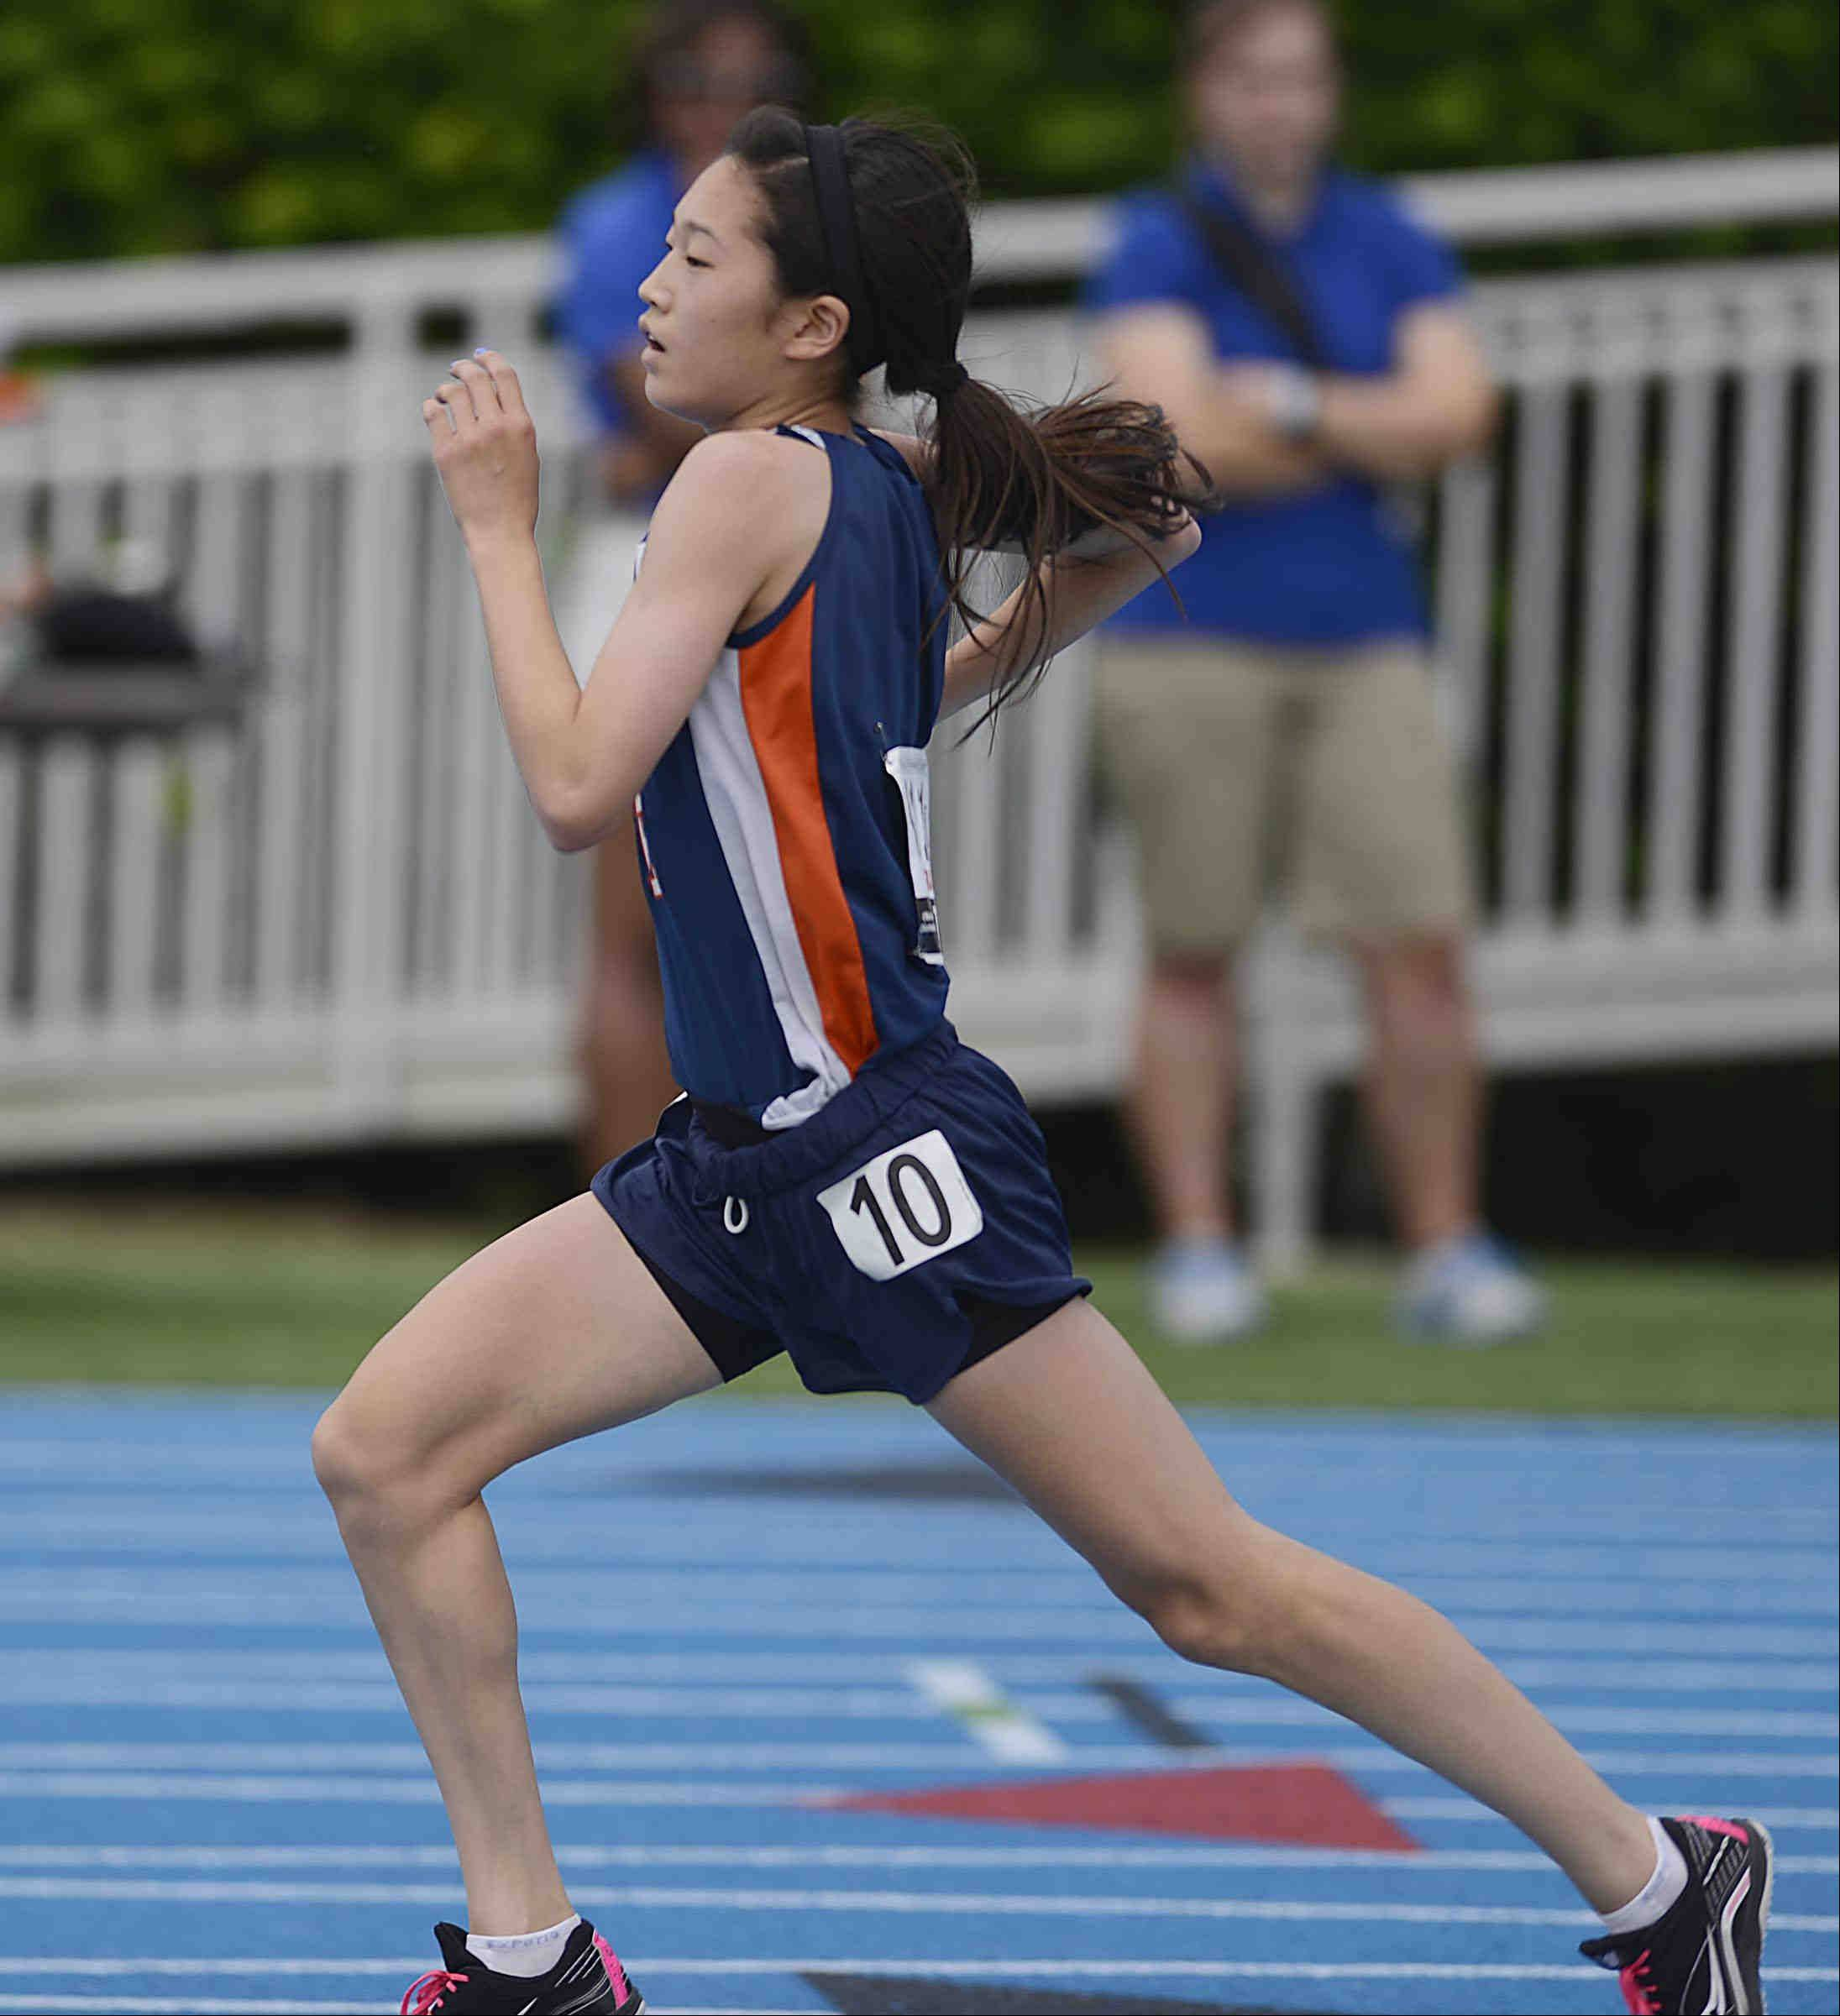 Buffalo Grove freshman Kaitlyn Ko wins her heat of the 1,600-meter run Saturday at the Class 3A girls track and field state finals at O�Brien Stadium on the campus of Eastern Illinois University in Charleston.